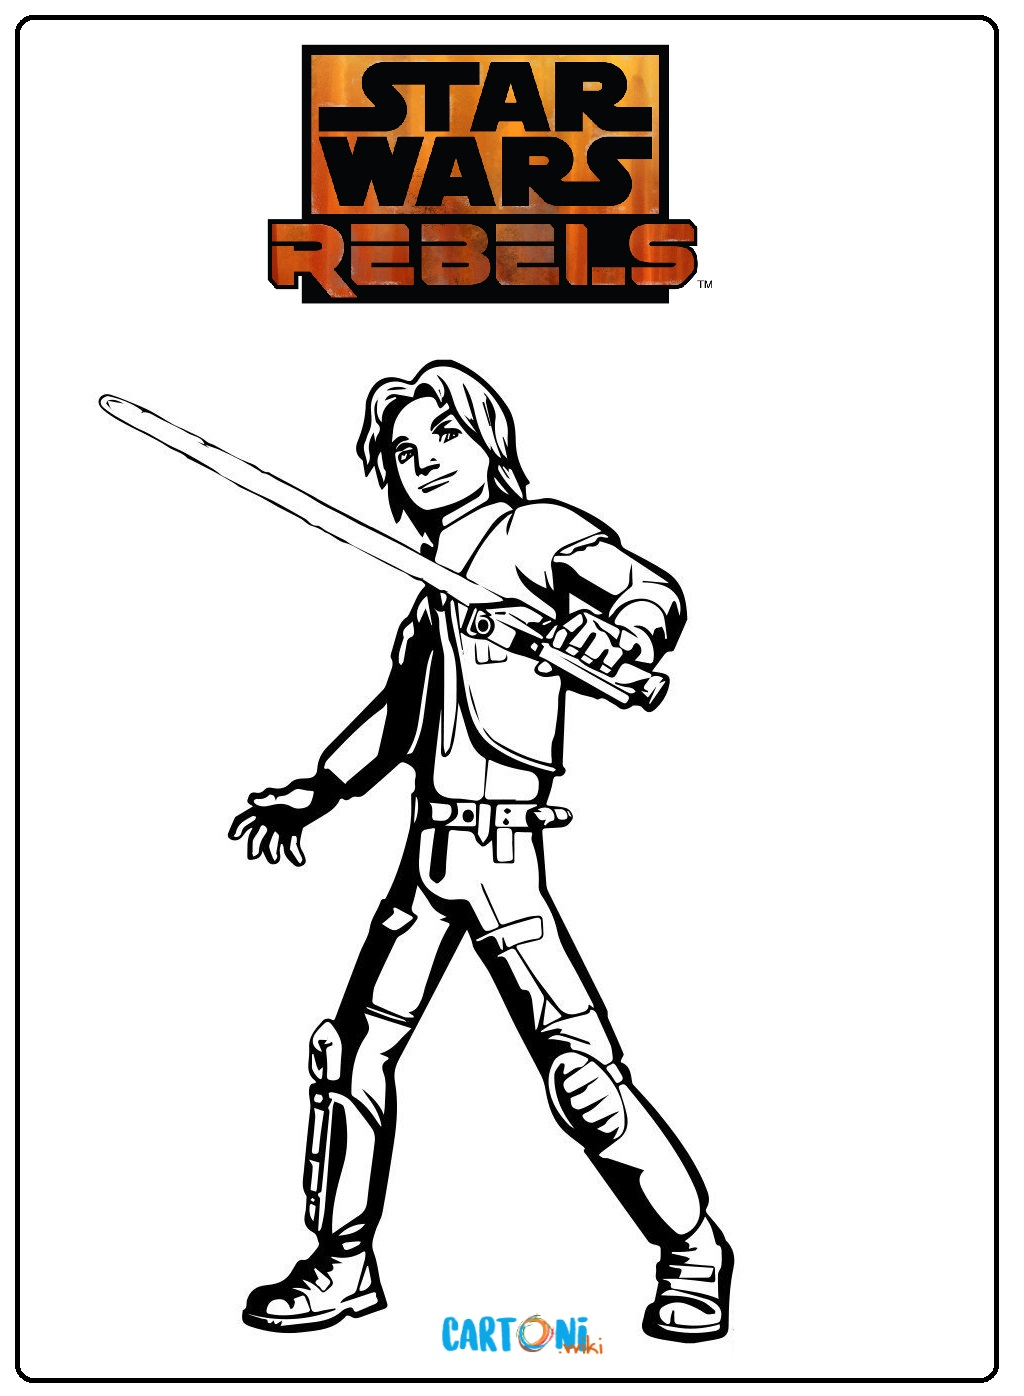 Disegni Da Colorare Star Wars Rebels.Stampa E Colora Star Wars Rebels Cartoni Animati